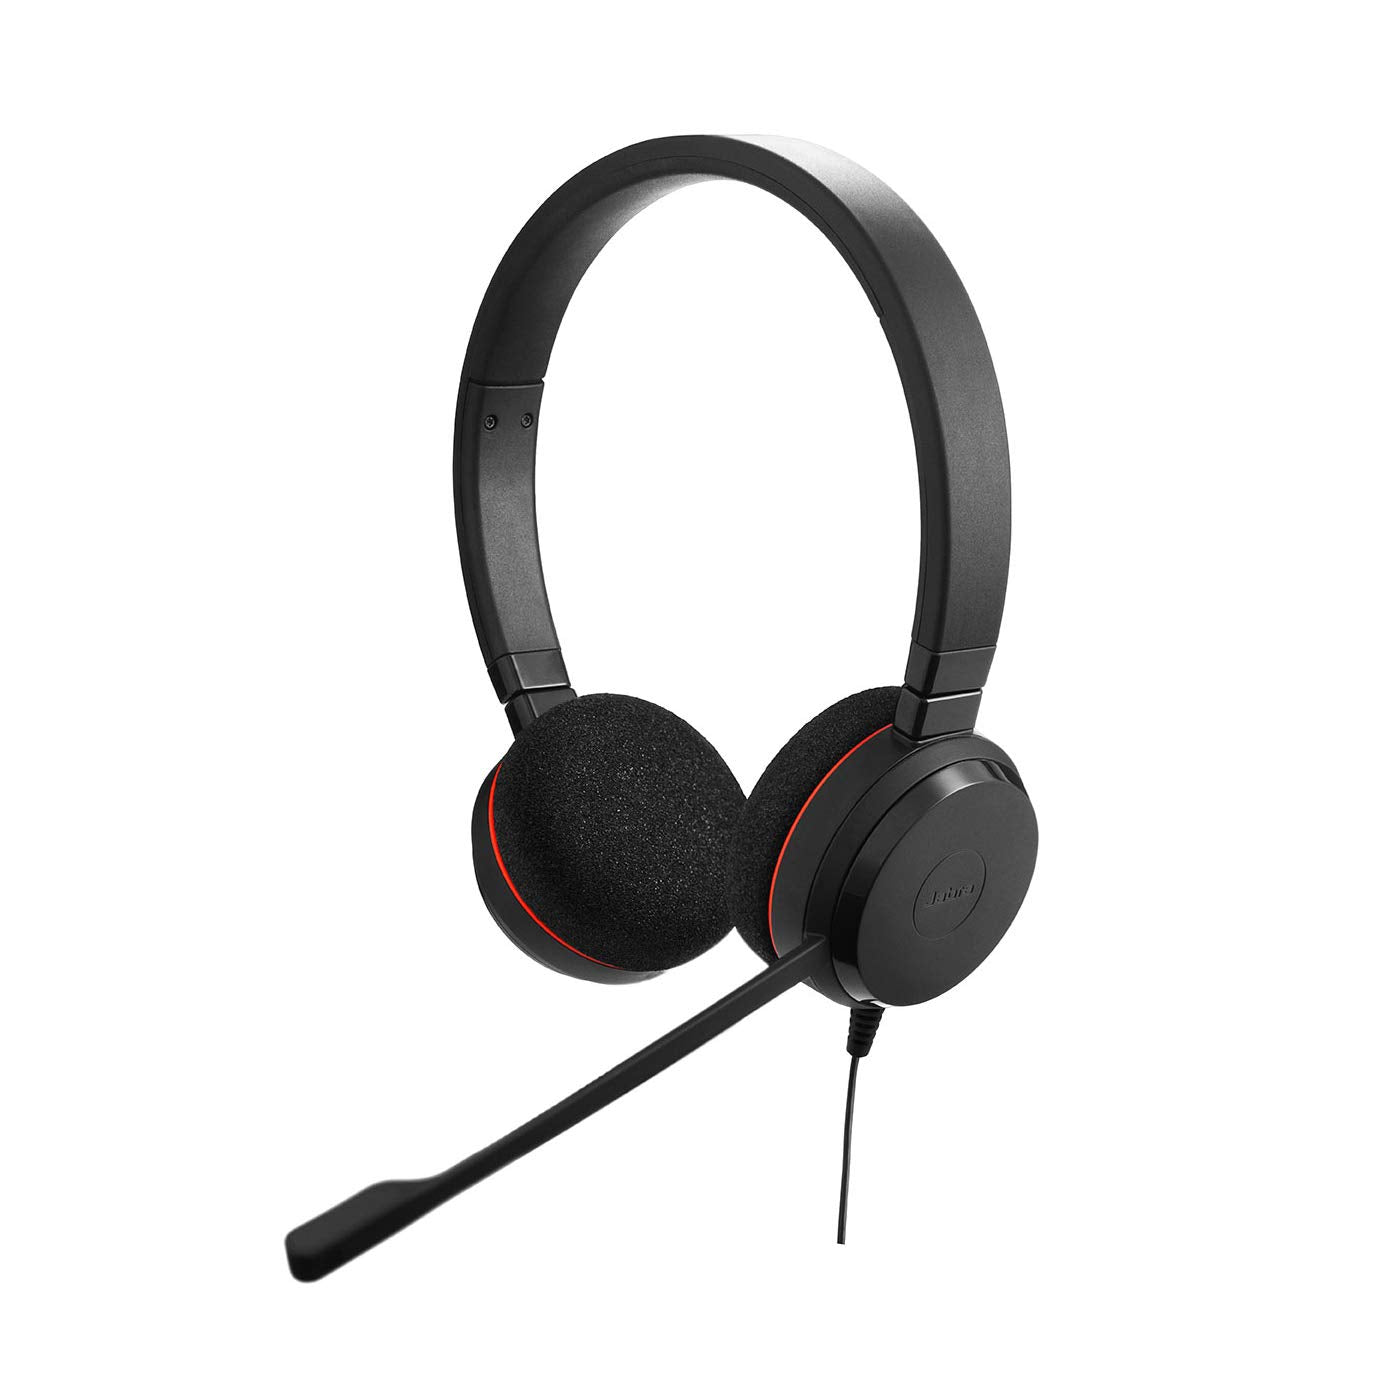 Jabra Evolve 20 UC Stereo Headset – Headphones for VoIP Softphone